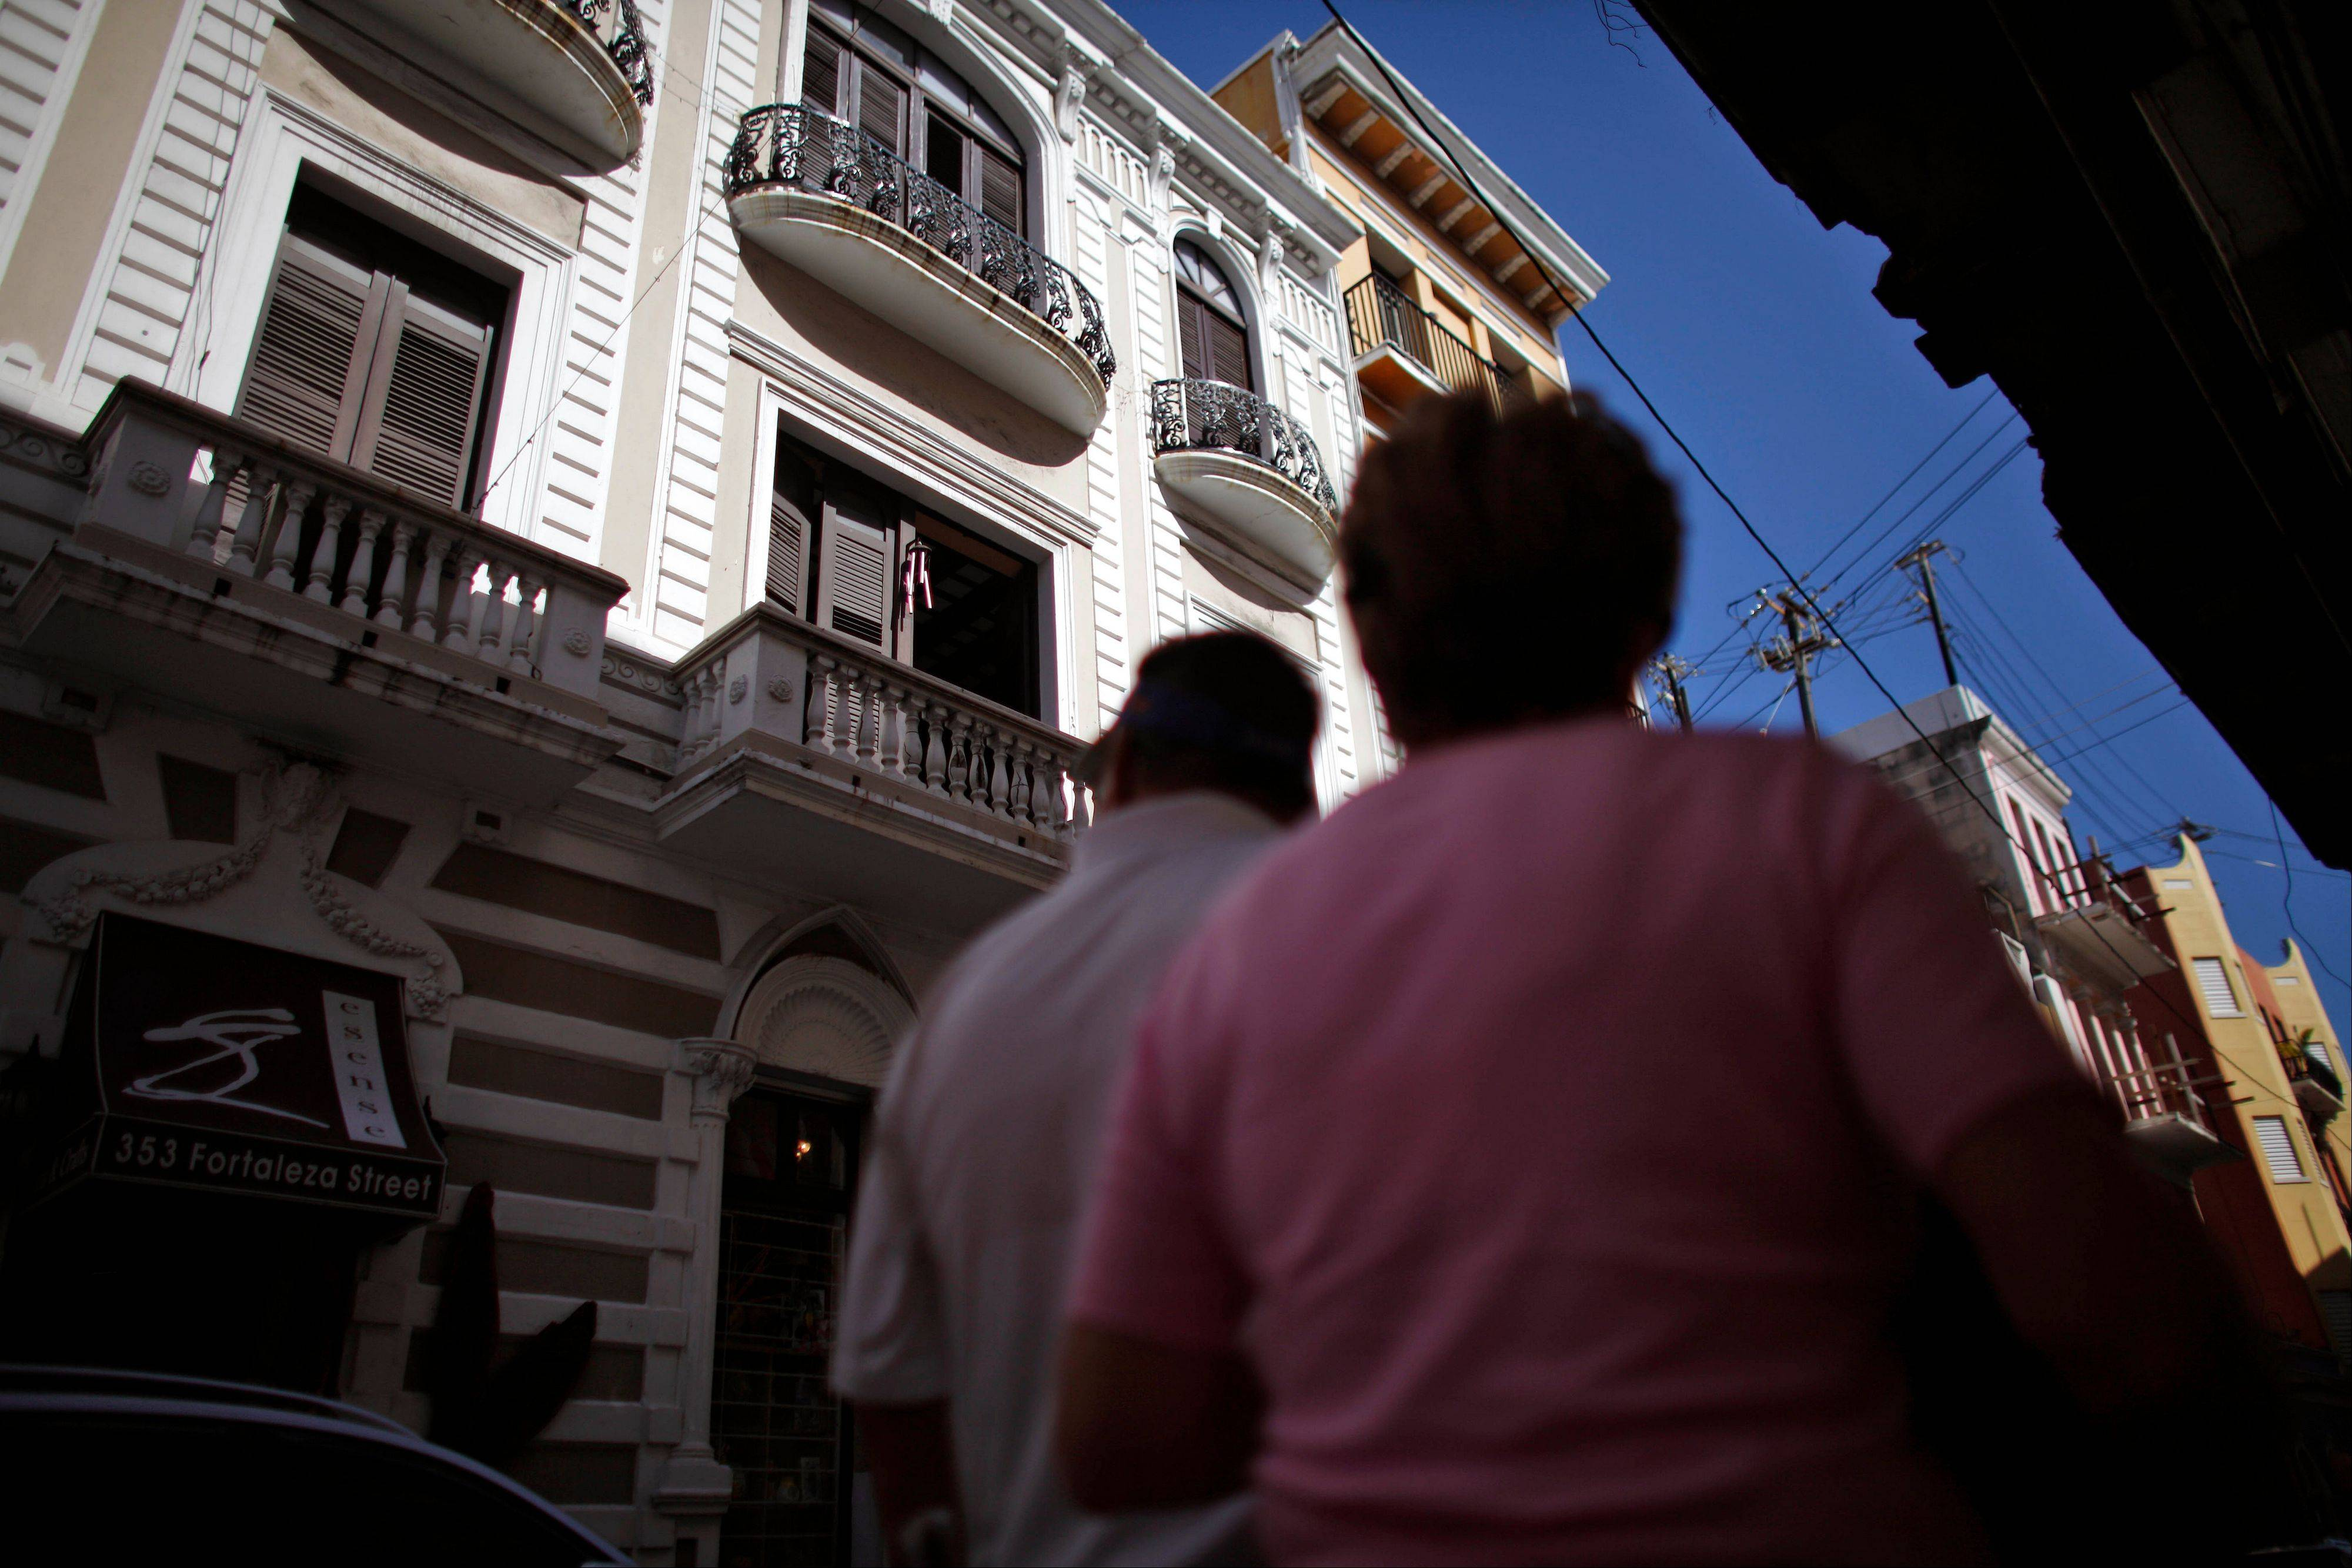 New stores, restaurants and coffee shops have opened and many of the old homes have been restored in Old San Juan.